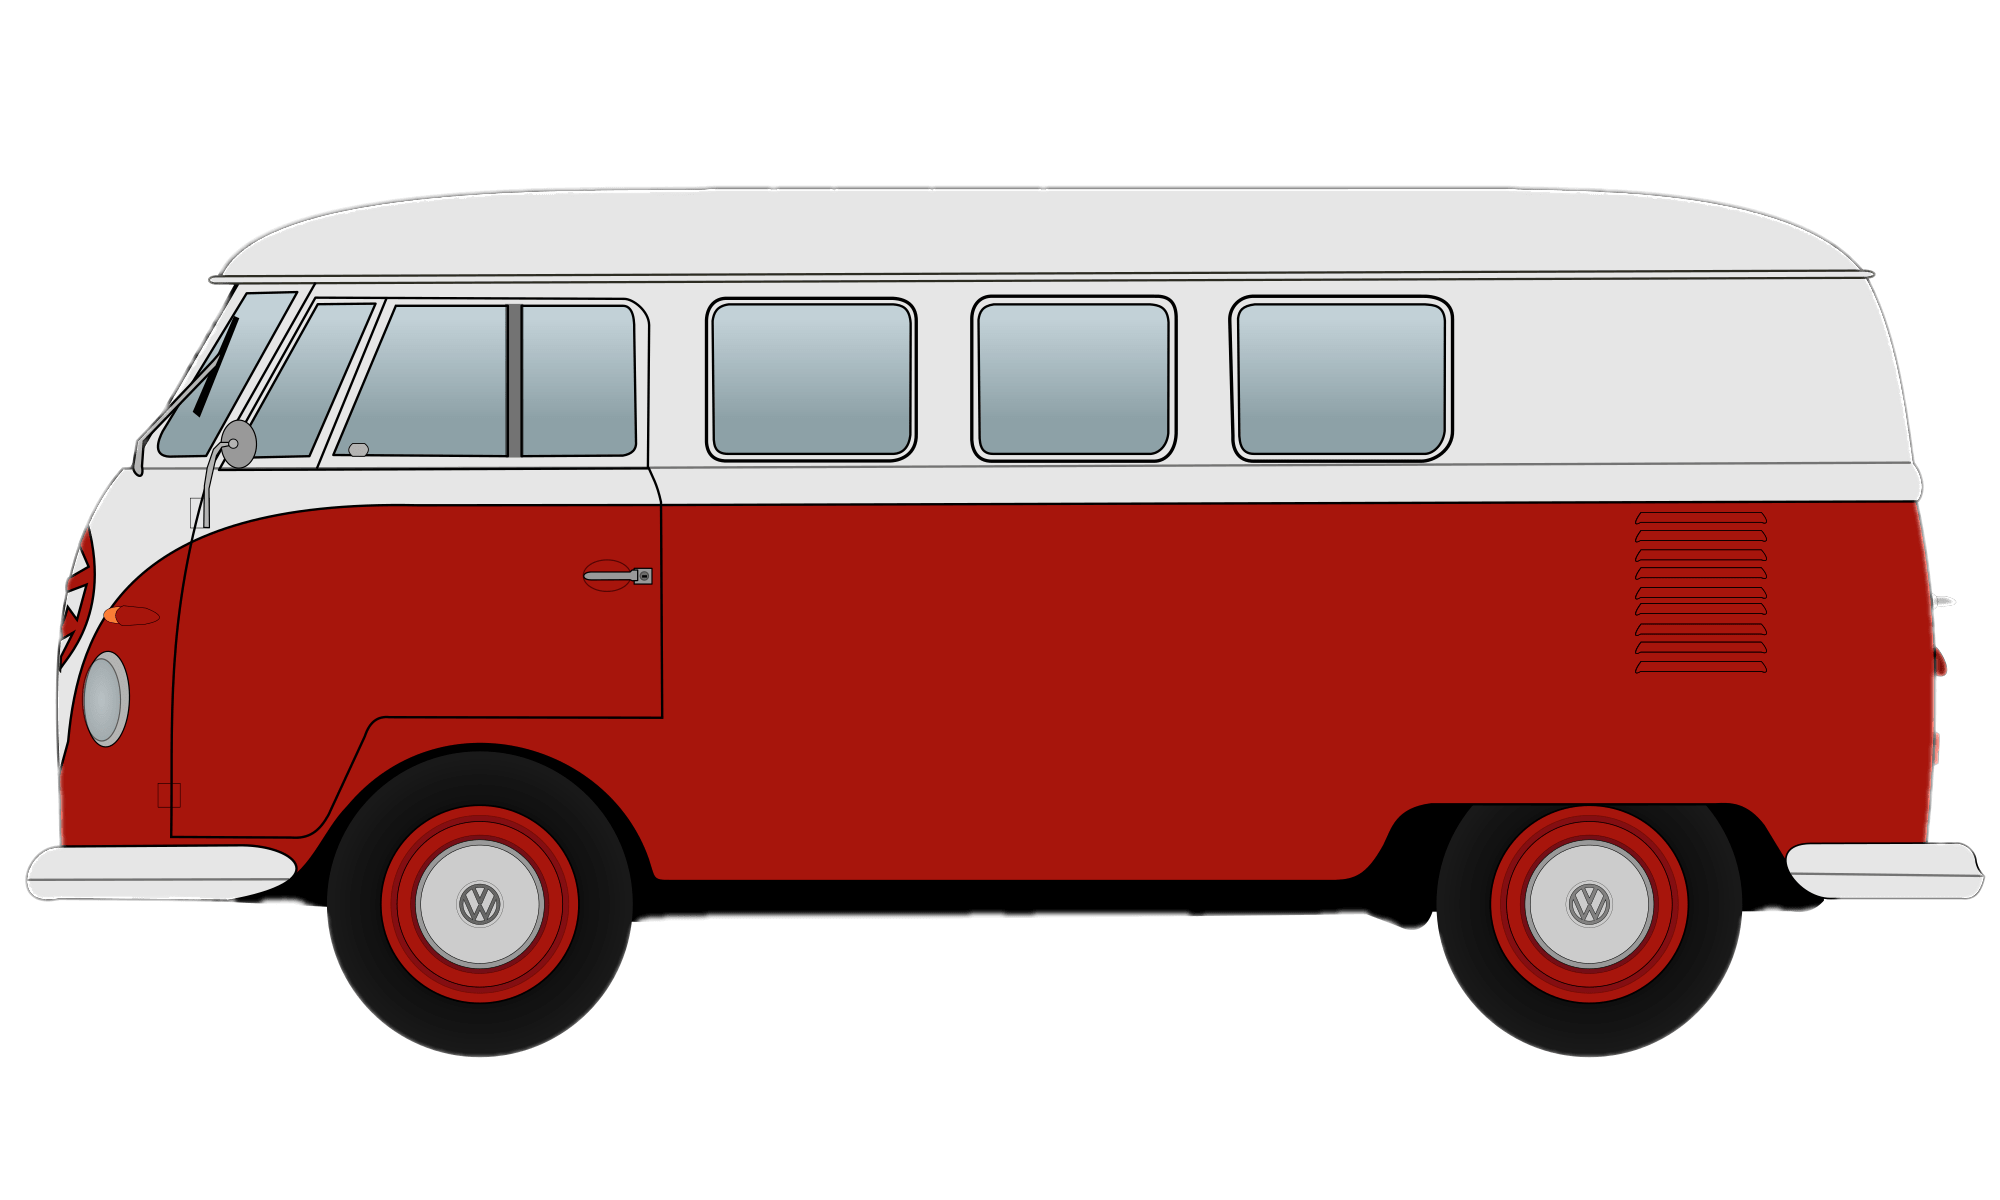 Camper clipart red. Volkswagen van transparent png